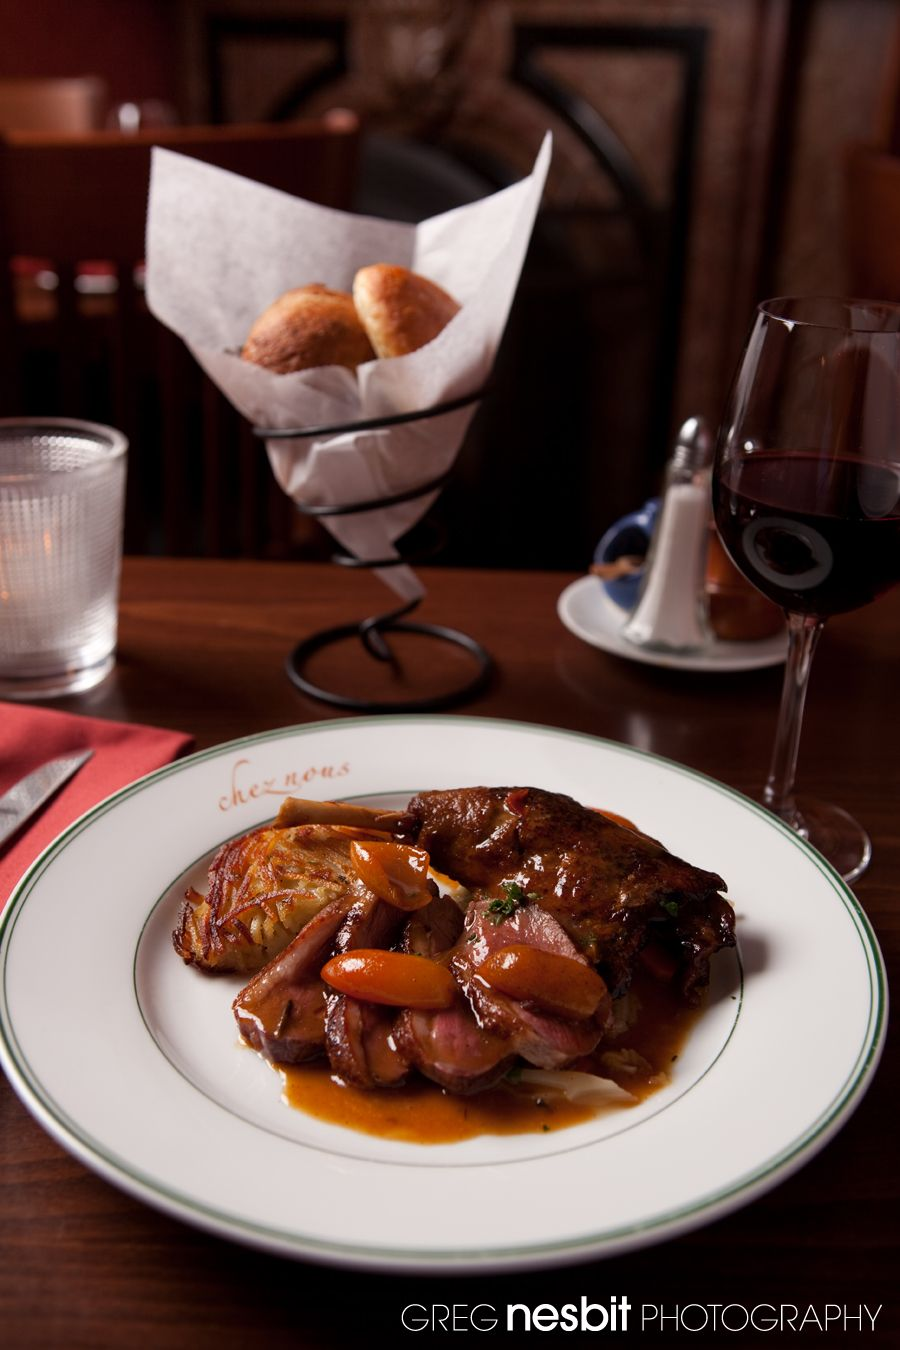 Duck 2-Ways: Roasted Magret of Duck and Braised Duck Leg  with Kumquat Sauce, Rosti Potatoes, Melted Savoy Cabbage